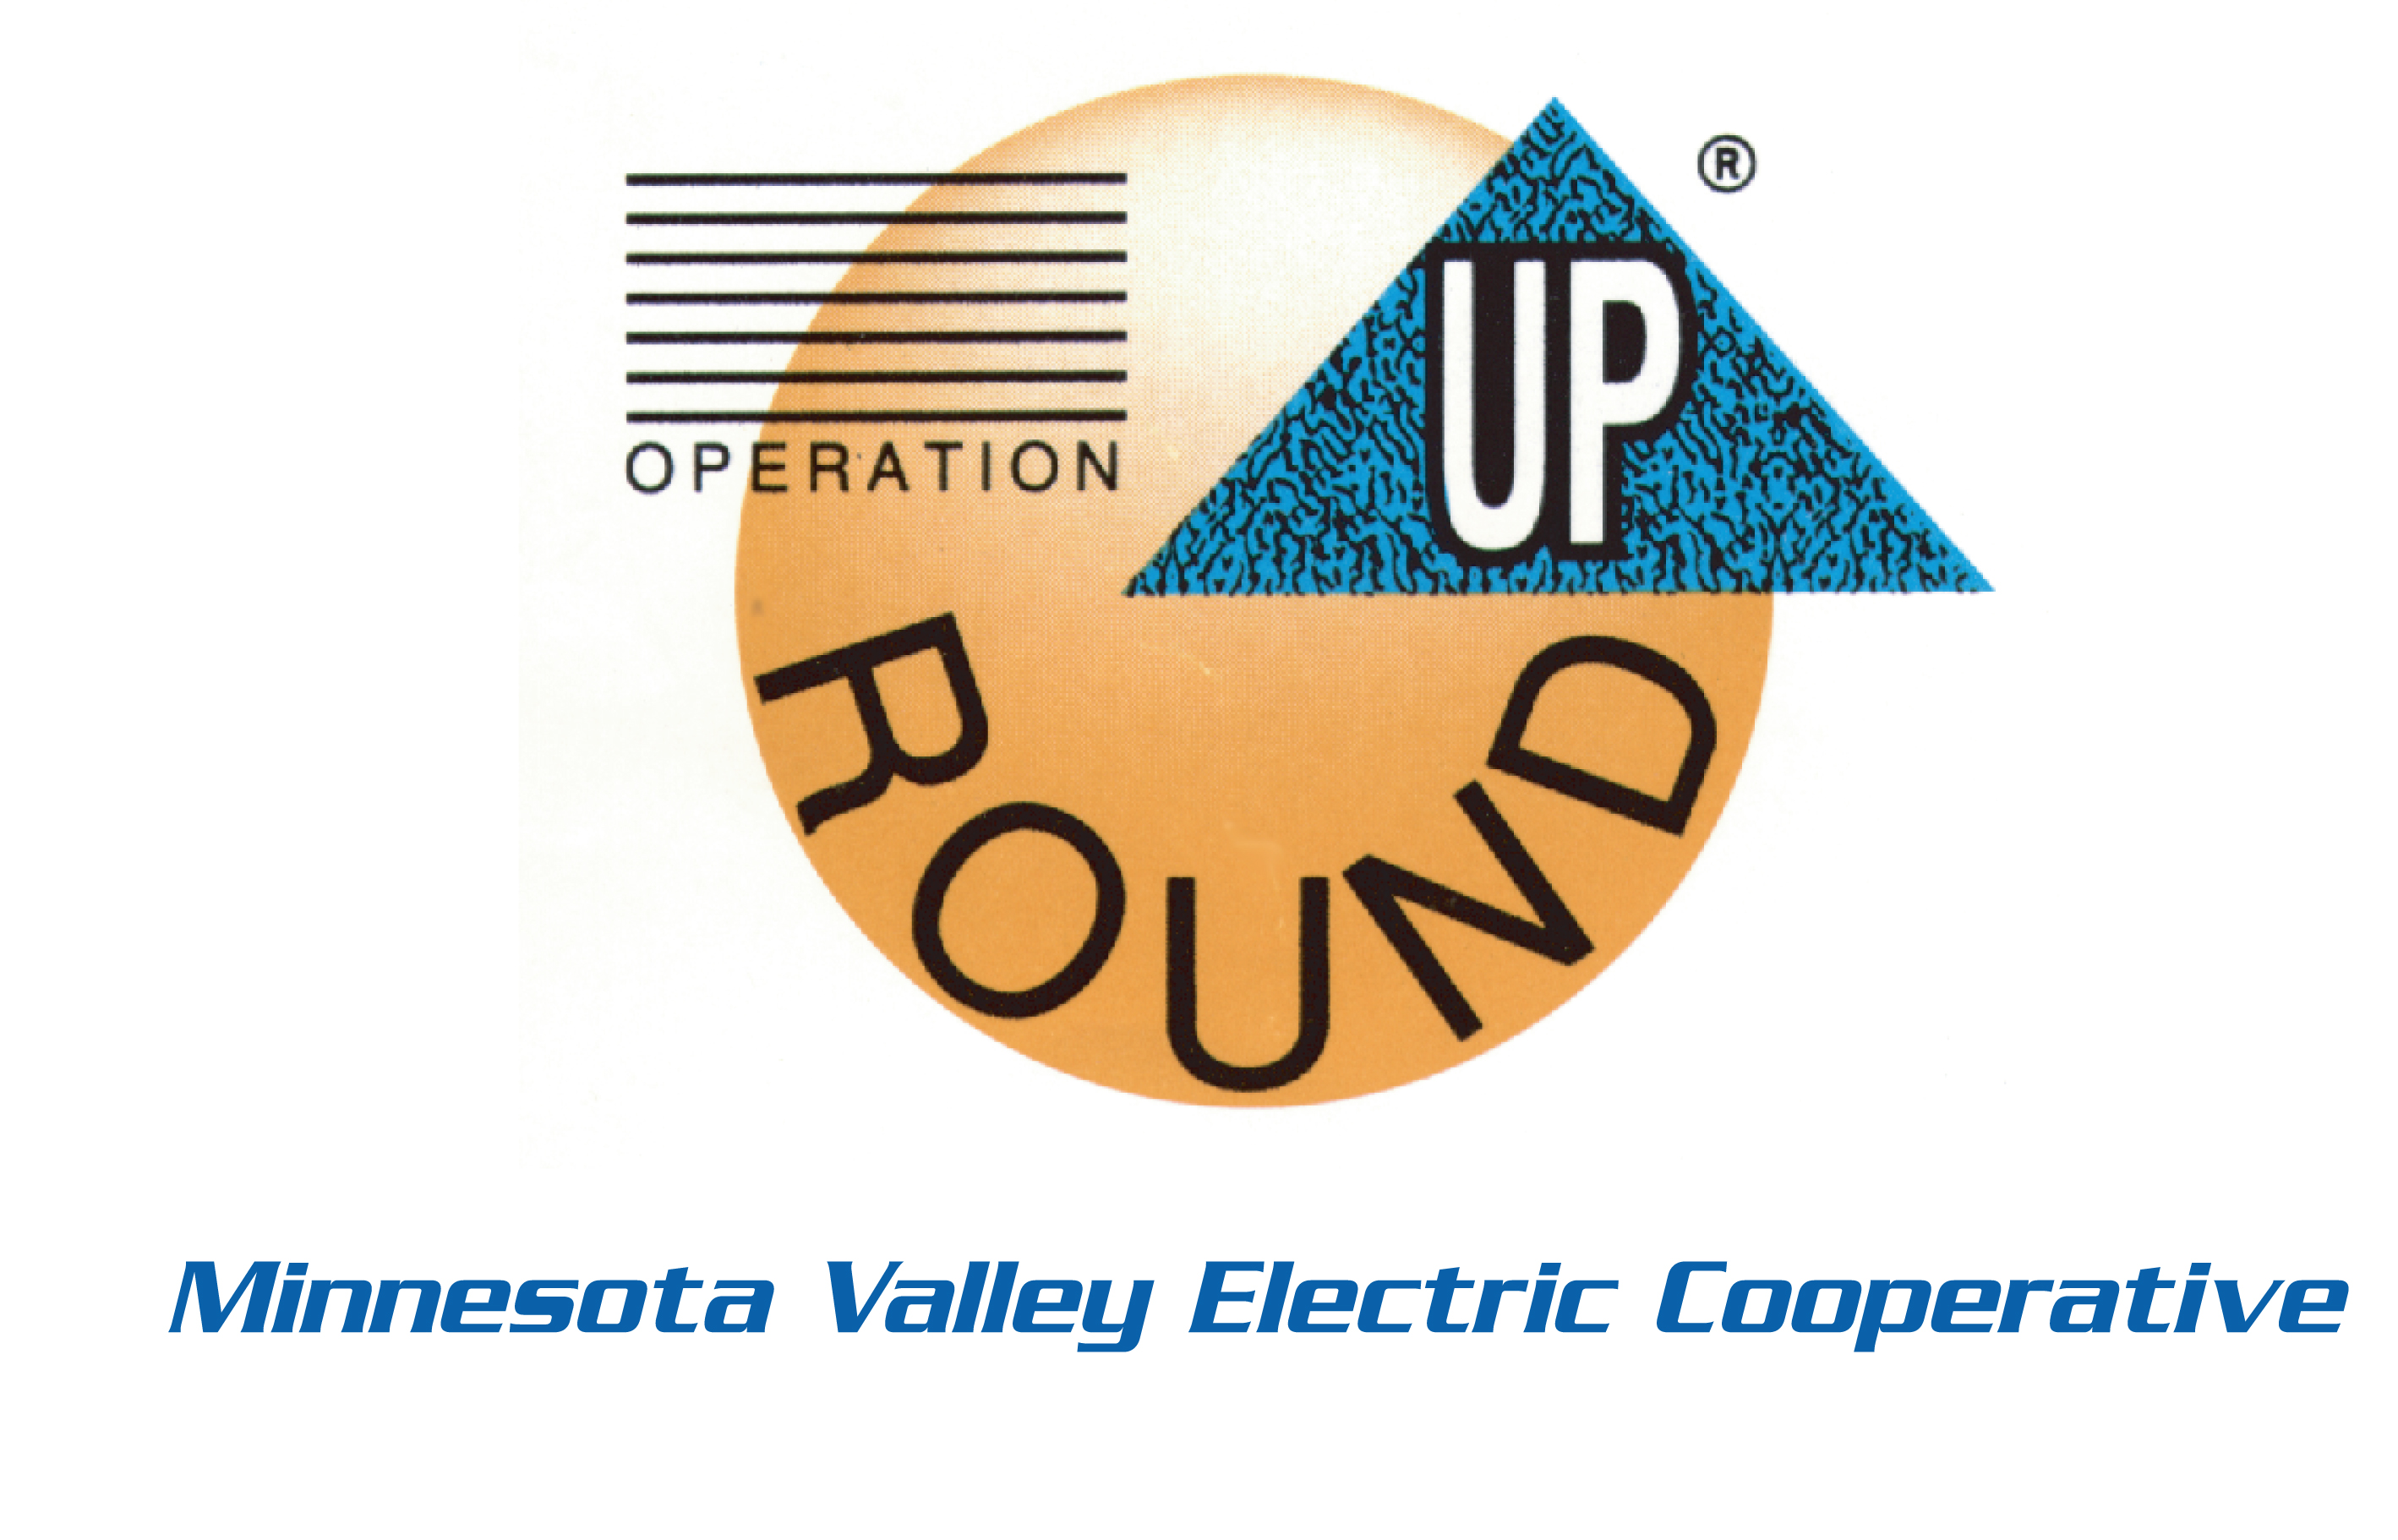 MVEC (Minnesota Valley Electric Cooperative)